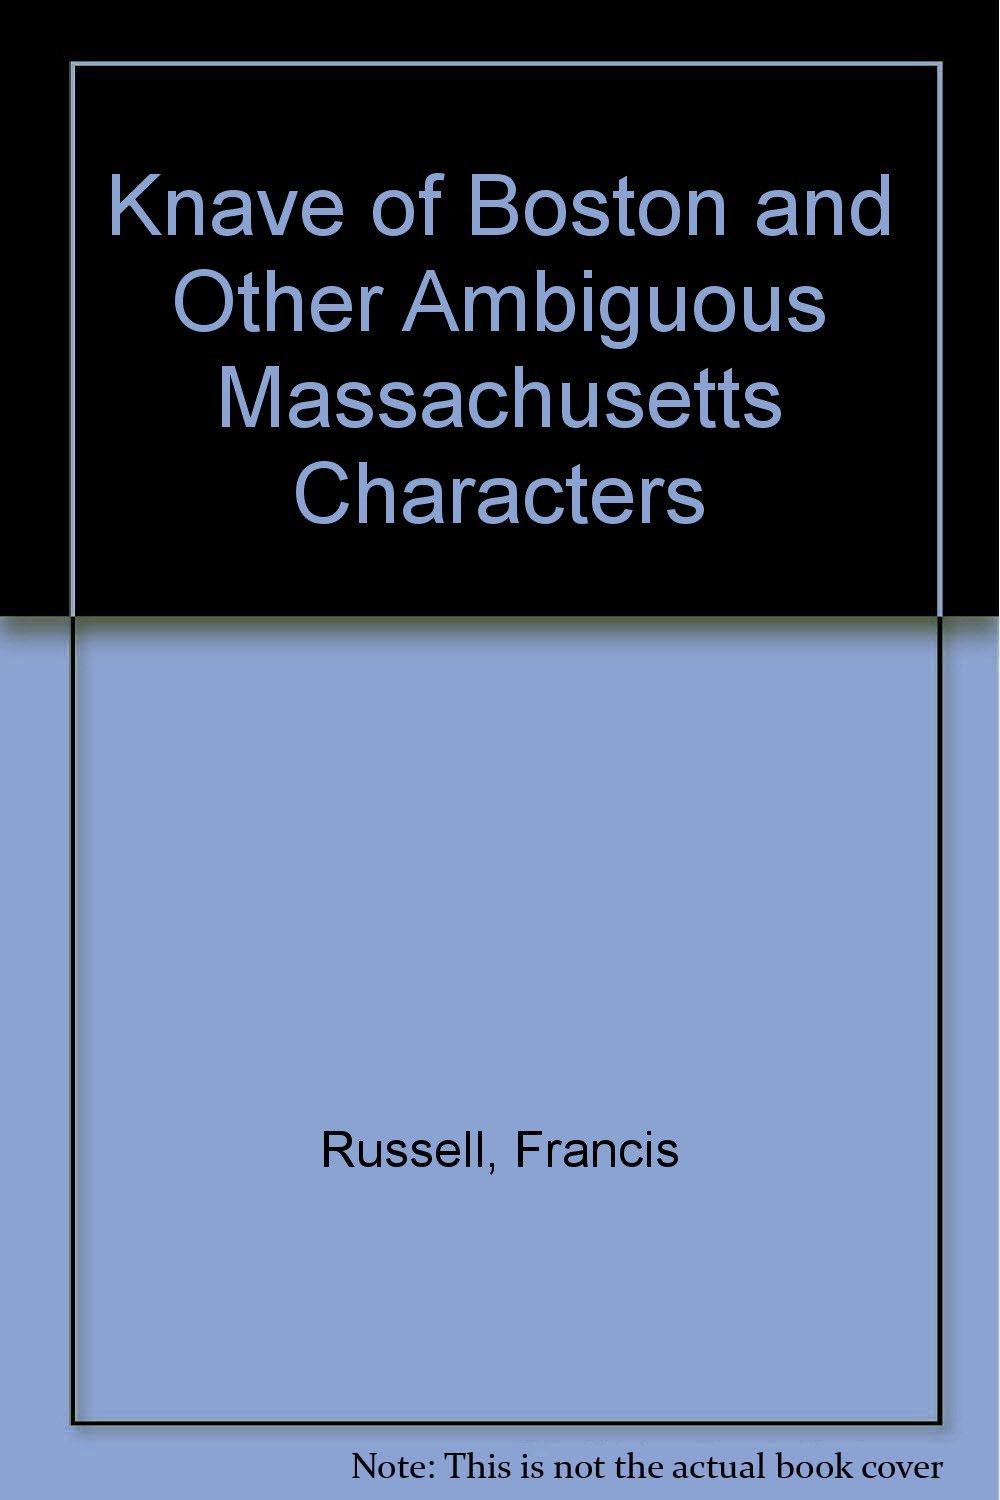 Knave of Boston and Other Ambiguous Massachusetts Characters